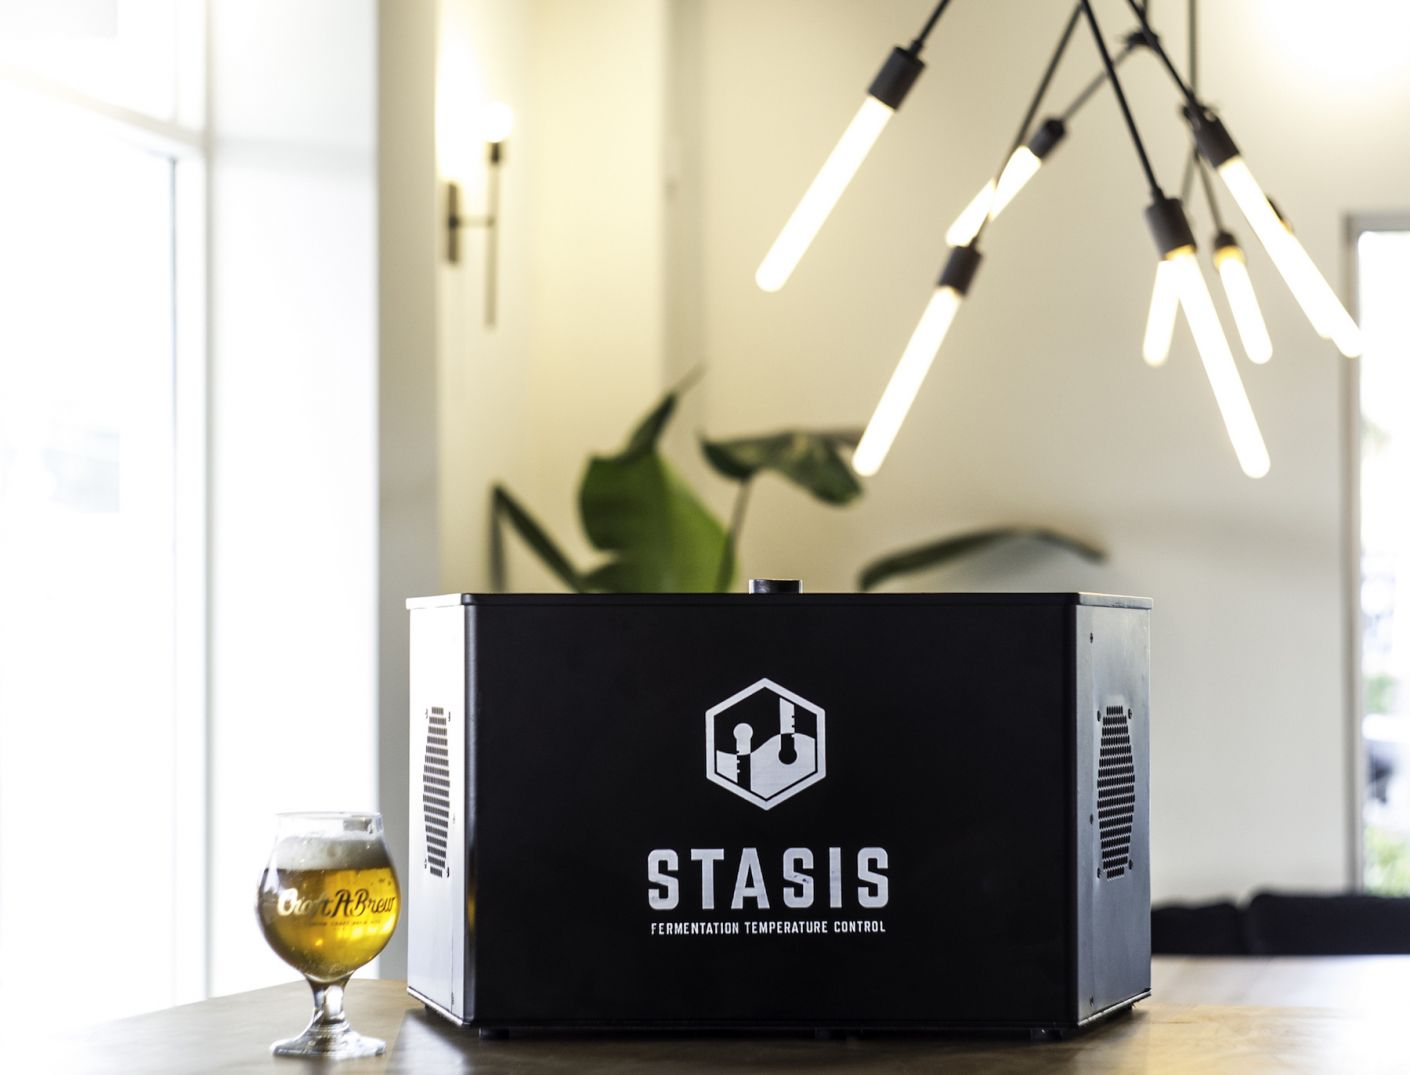 The Stasis Fermentation Temperature Control Glycol Chiller